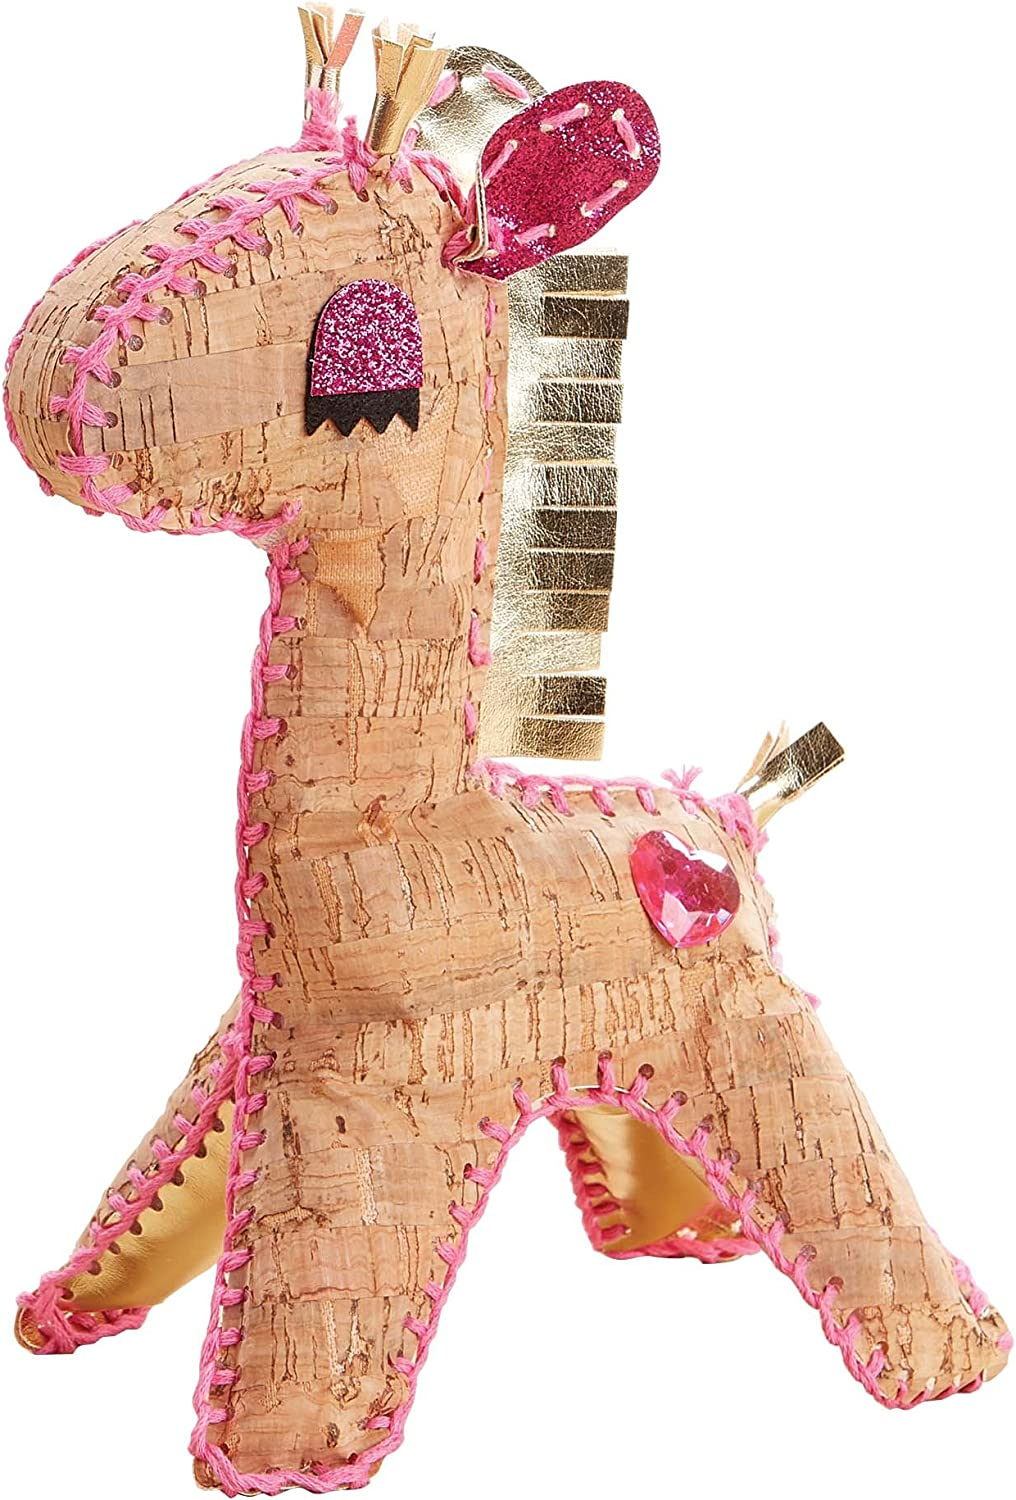 Alex DIY Sew Corky Giraffe Plush Kids Art and Craft Activity